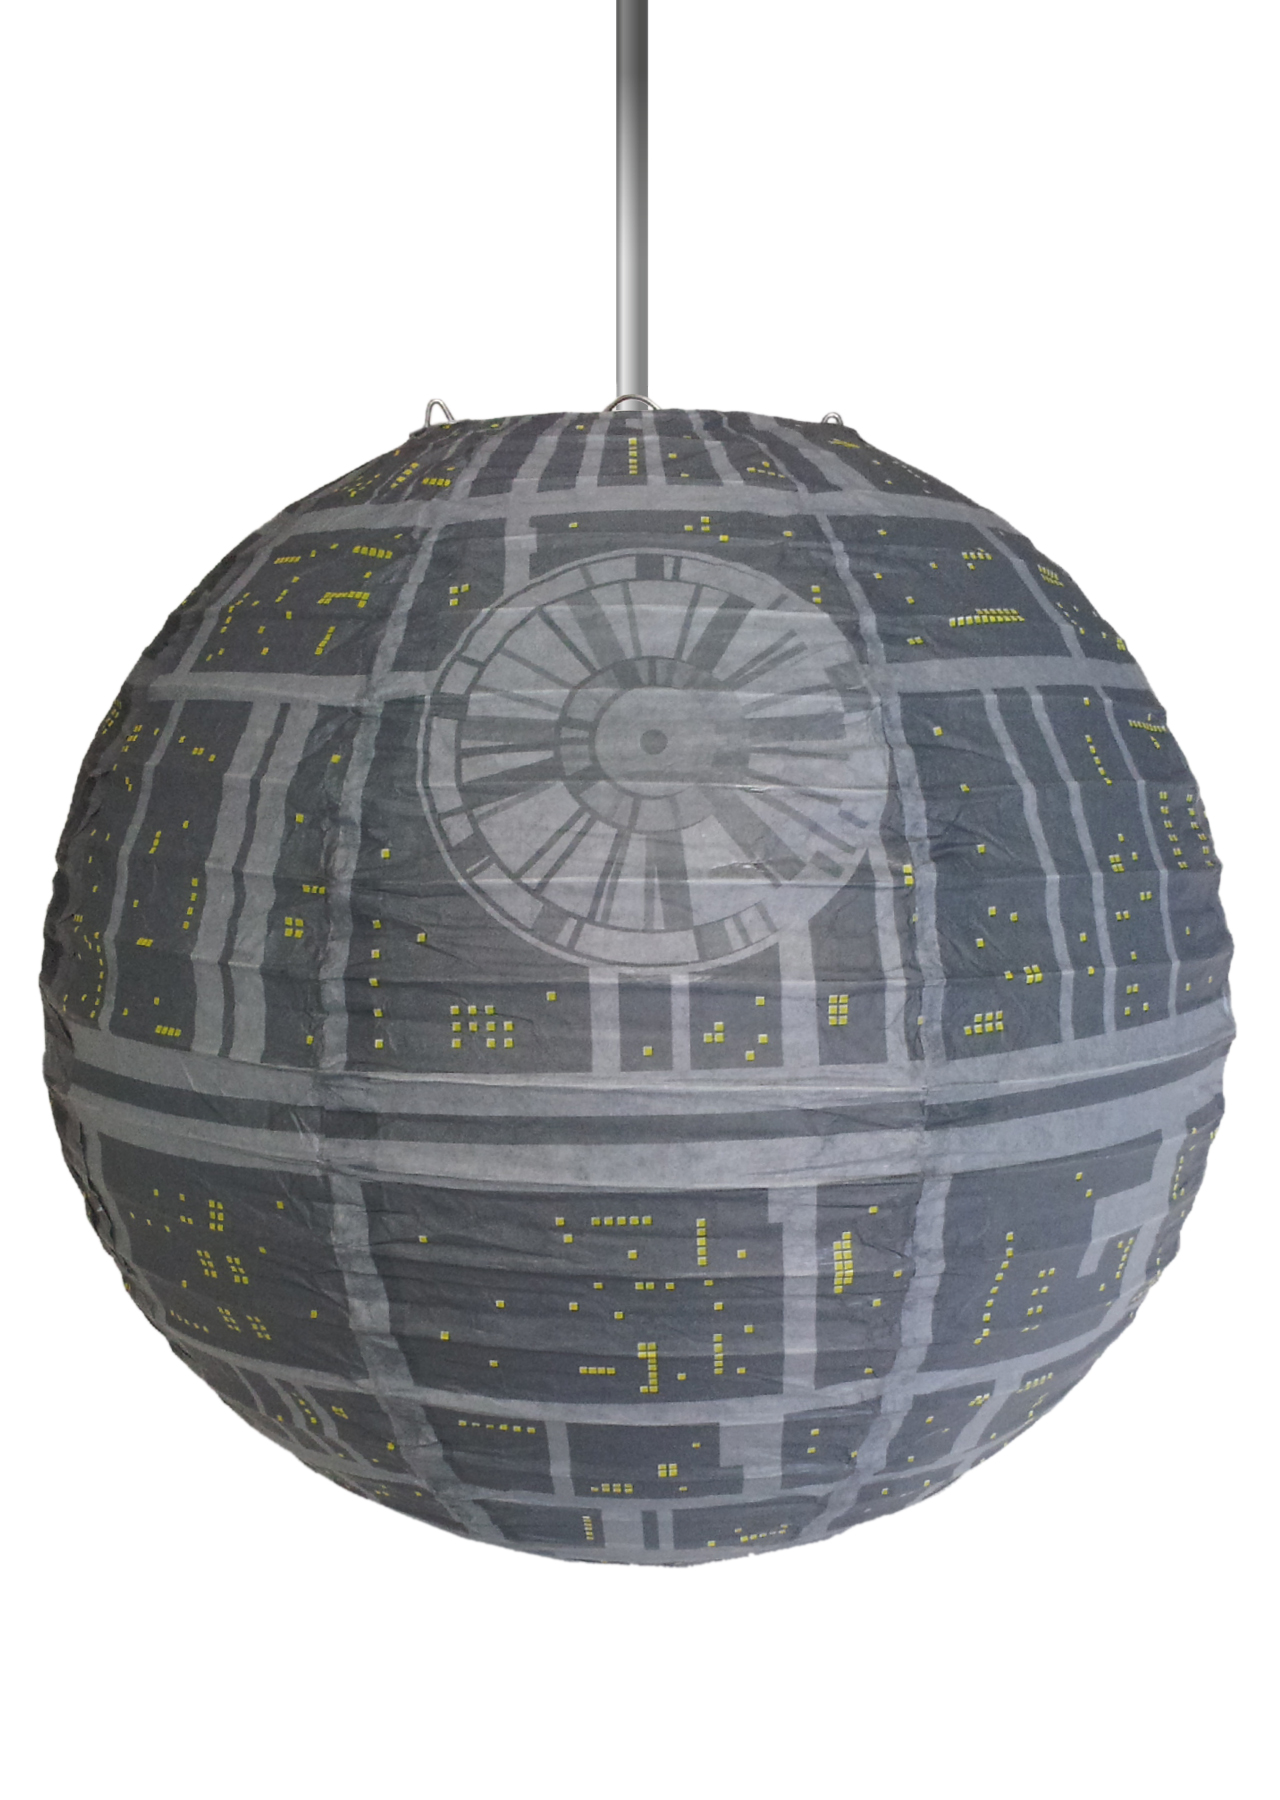 star wars death star 30cm paper light shade groovy uk